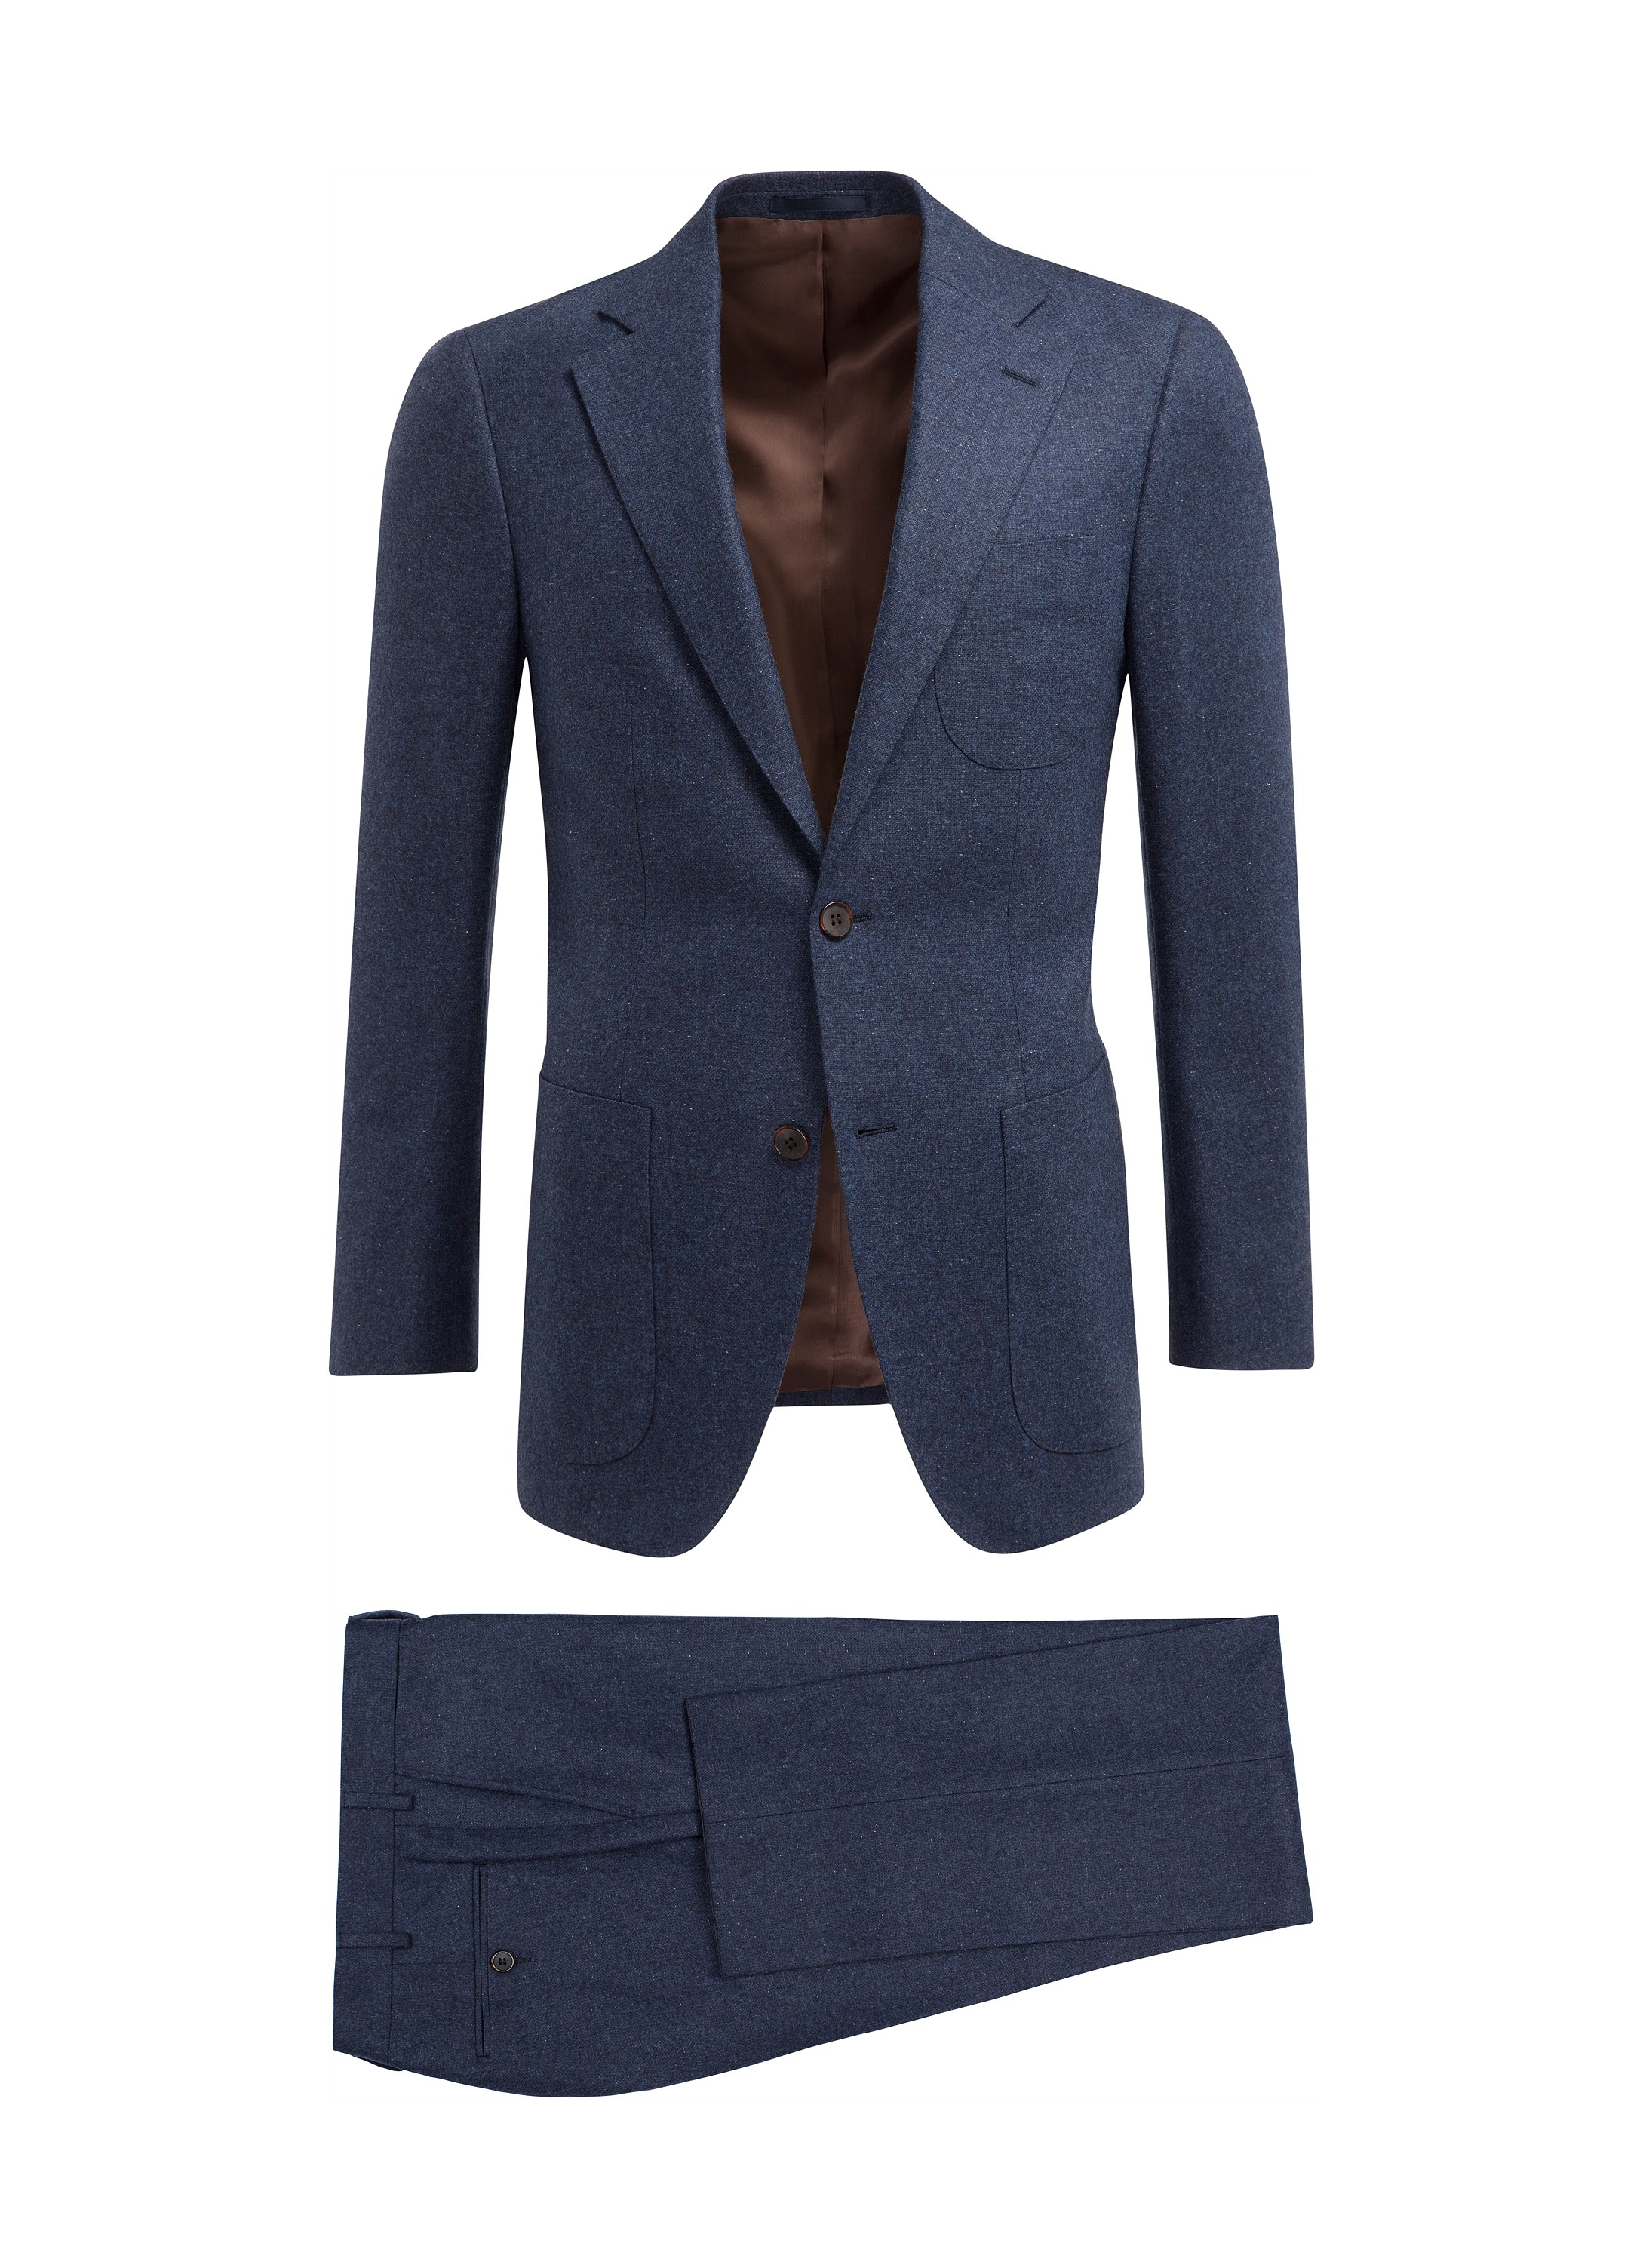 http://statics.suitsupply.com/images/products/Suits/zoom/Suits_Blue_Plain_Hudson_P4714_Suitsupply_Online_Store_5.jpg